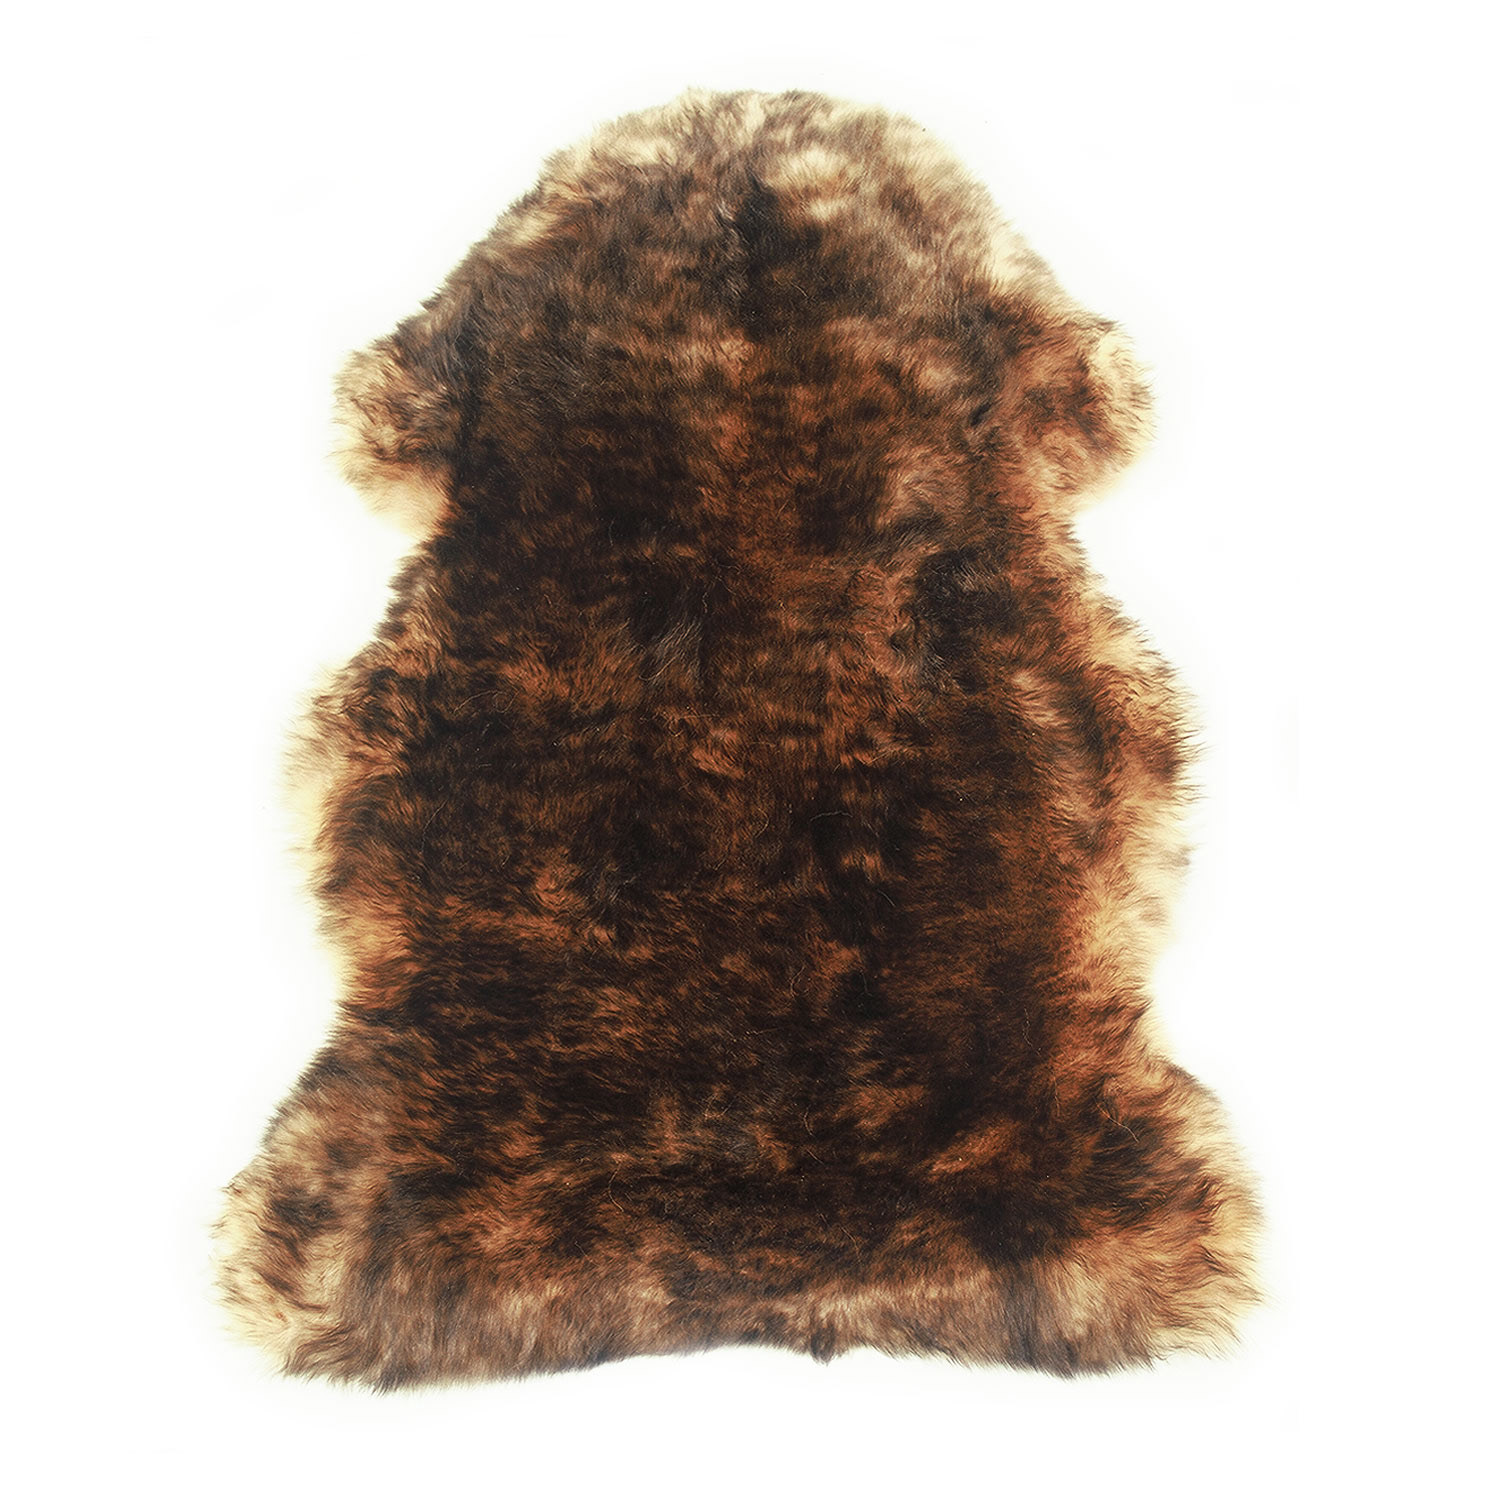 Sheepskin Rug Single Pelt Tan with Brown Tips